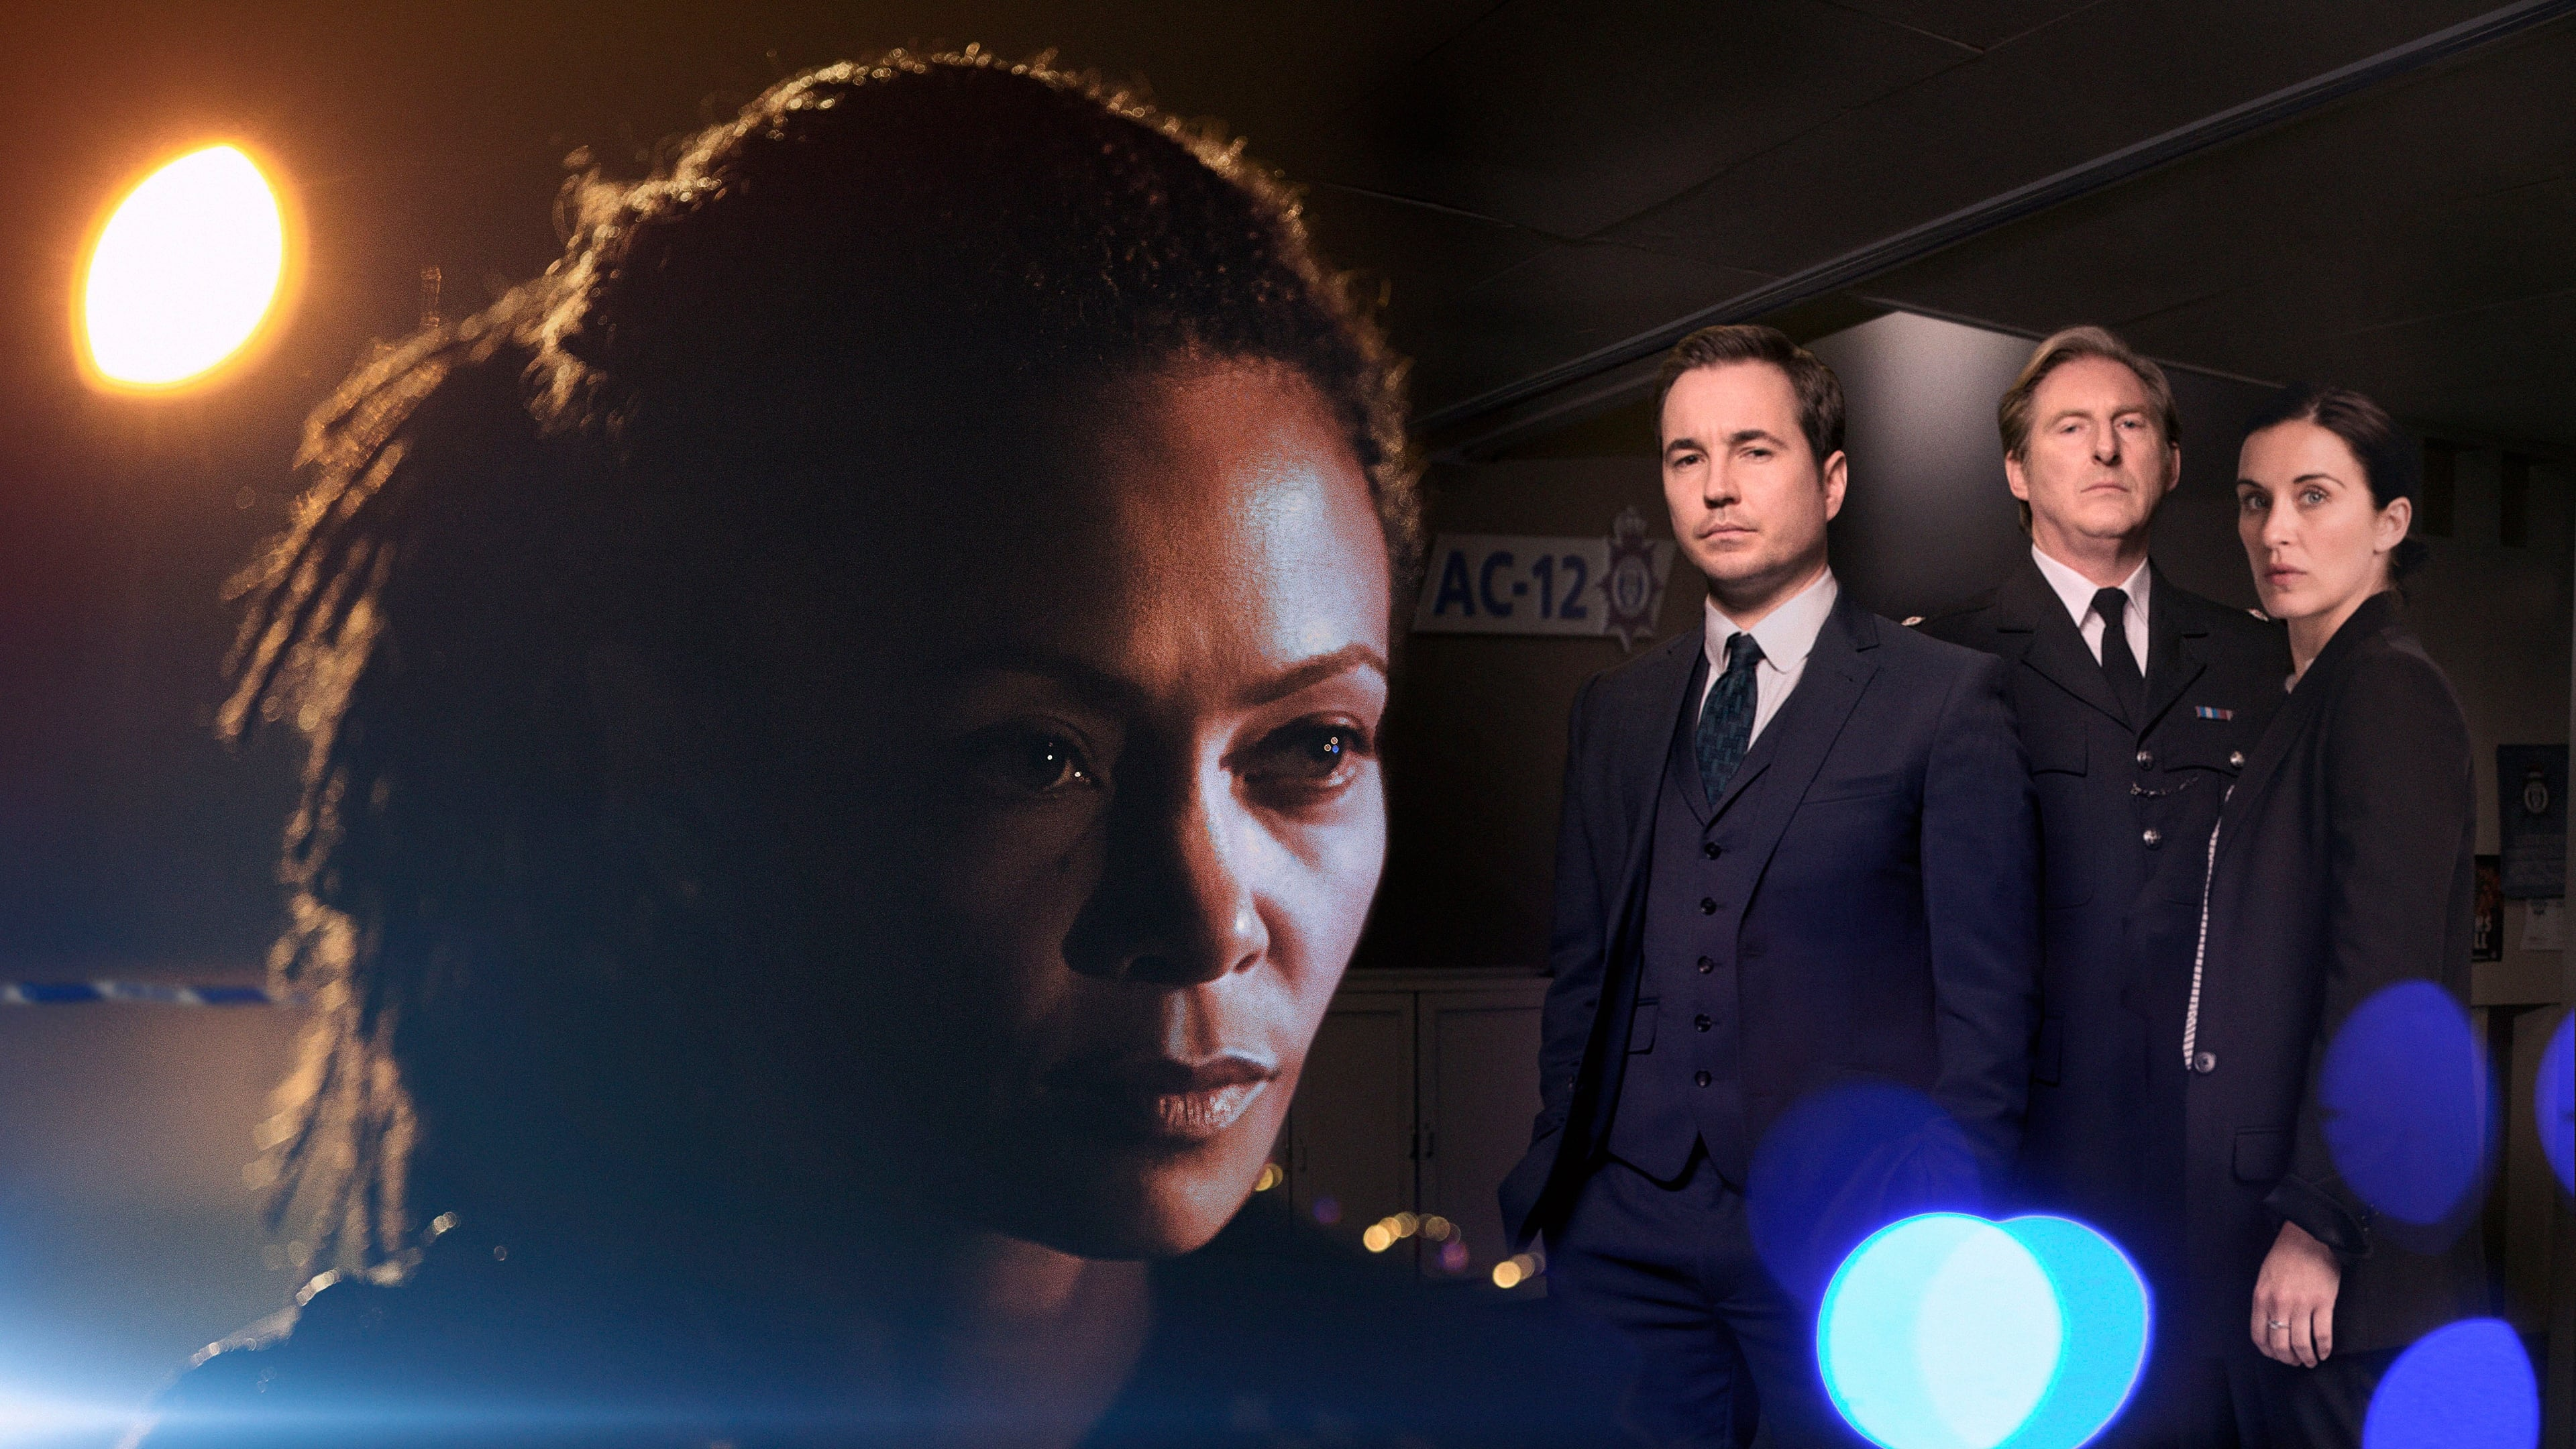 Sixth season Line of Duty to premiere in late March